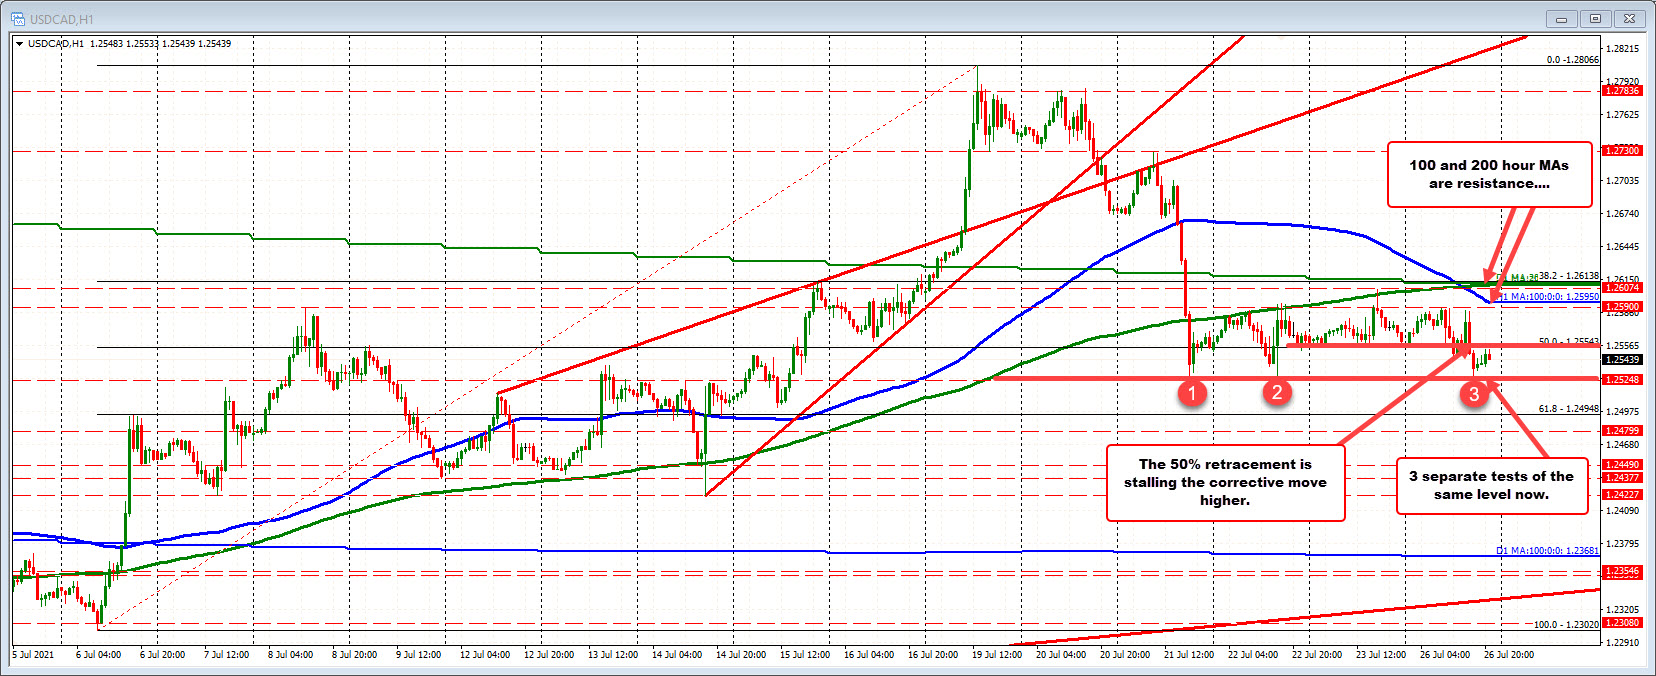 The 1.2525 area holds support again in the USDCAD